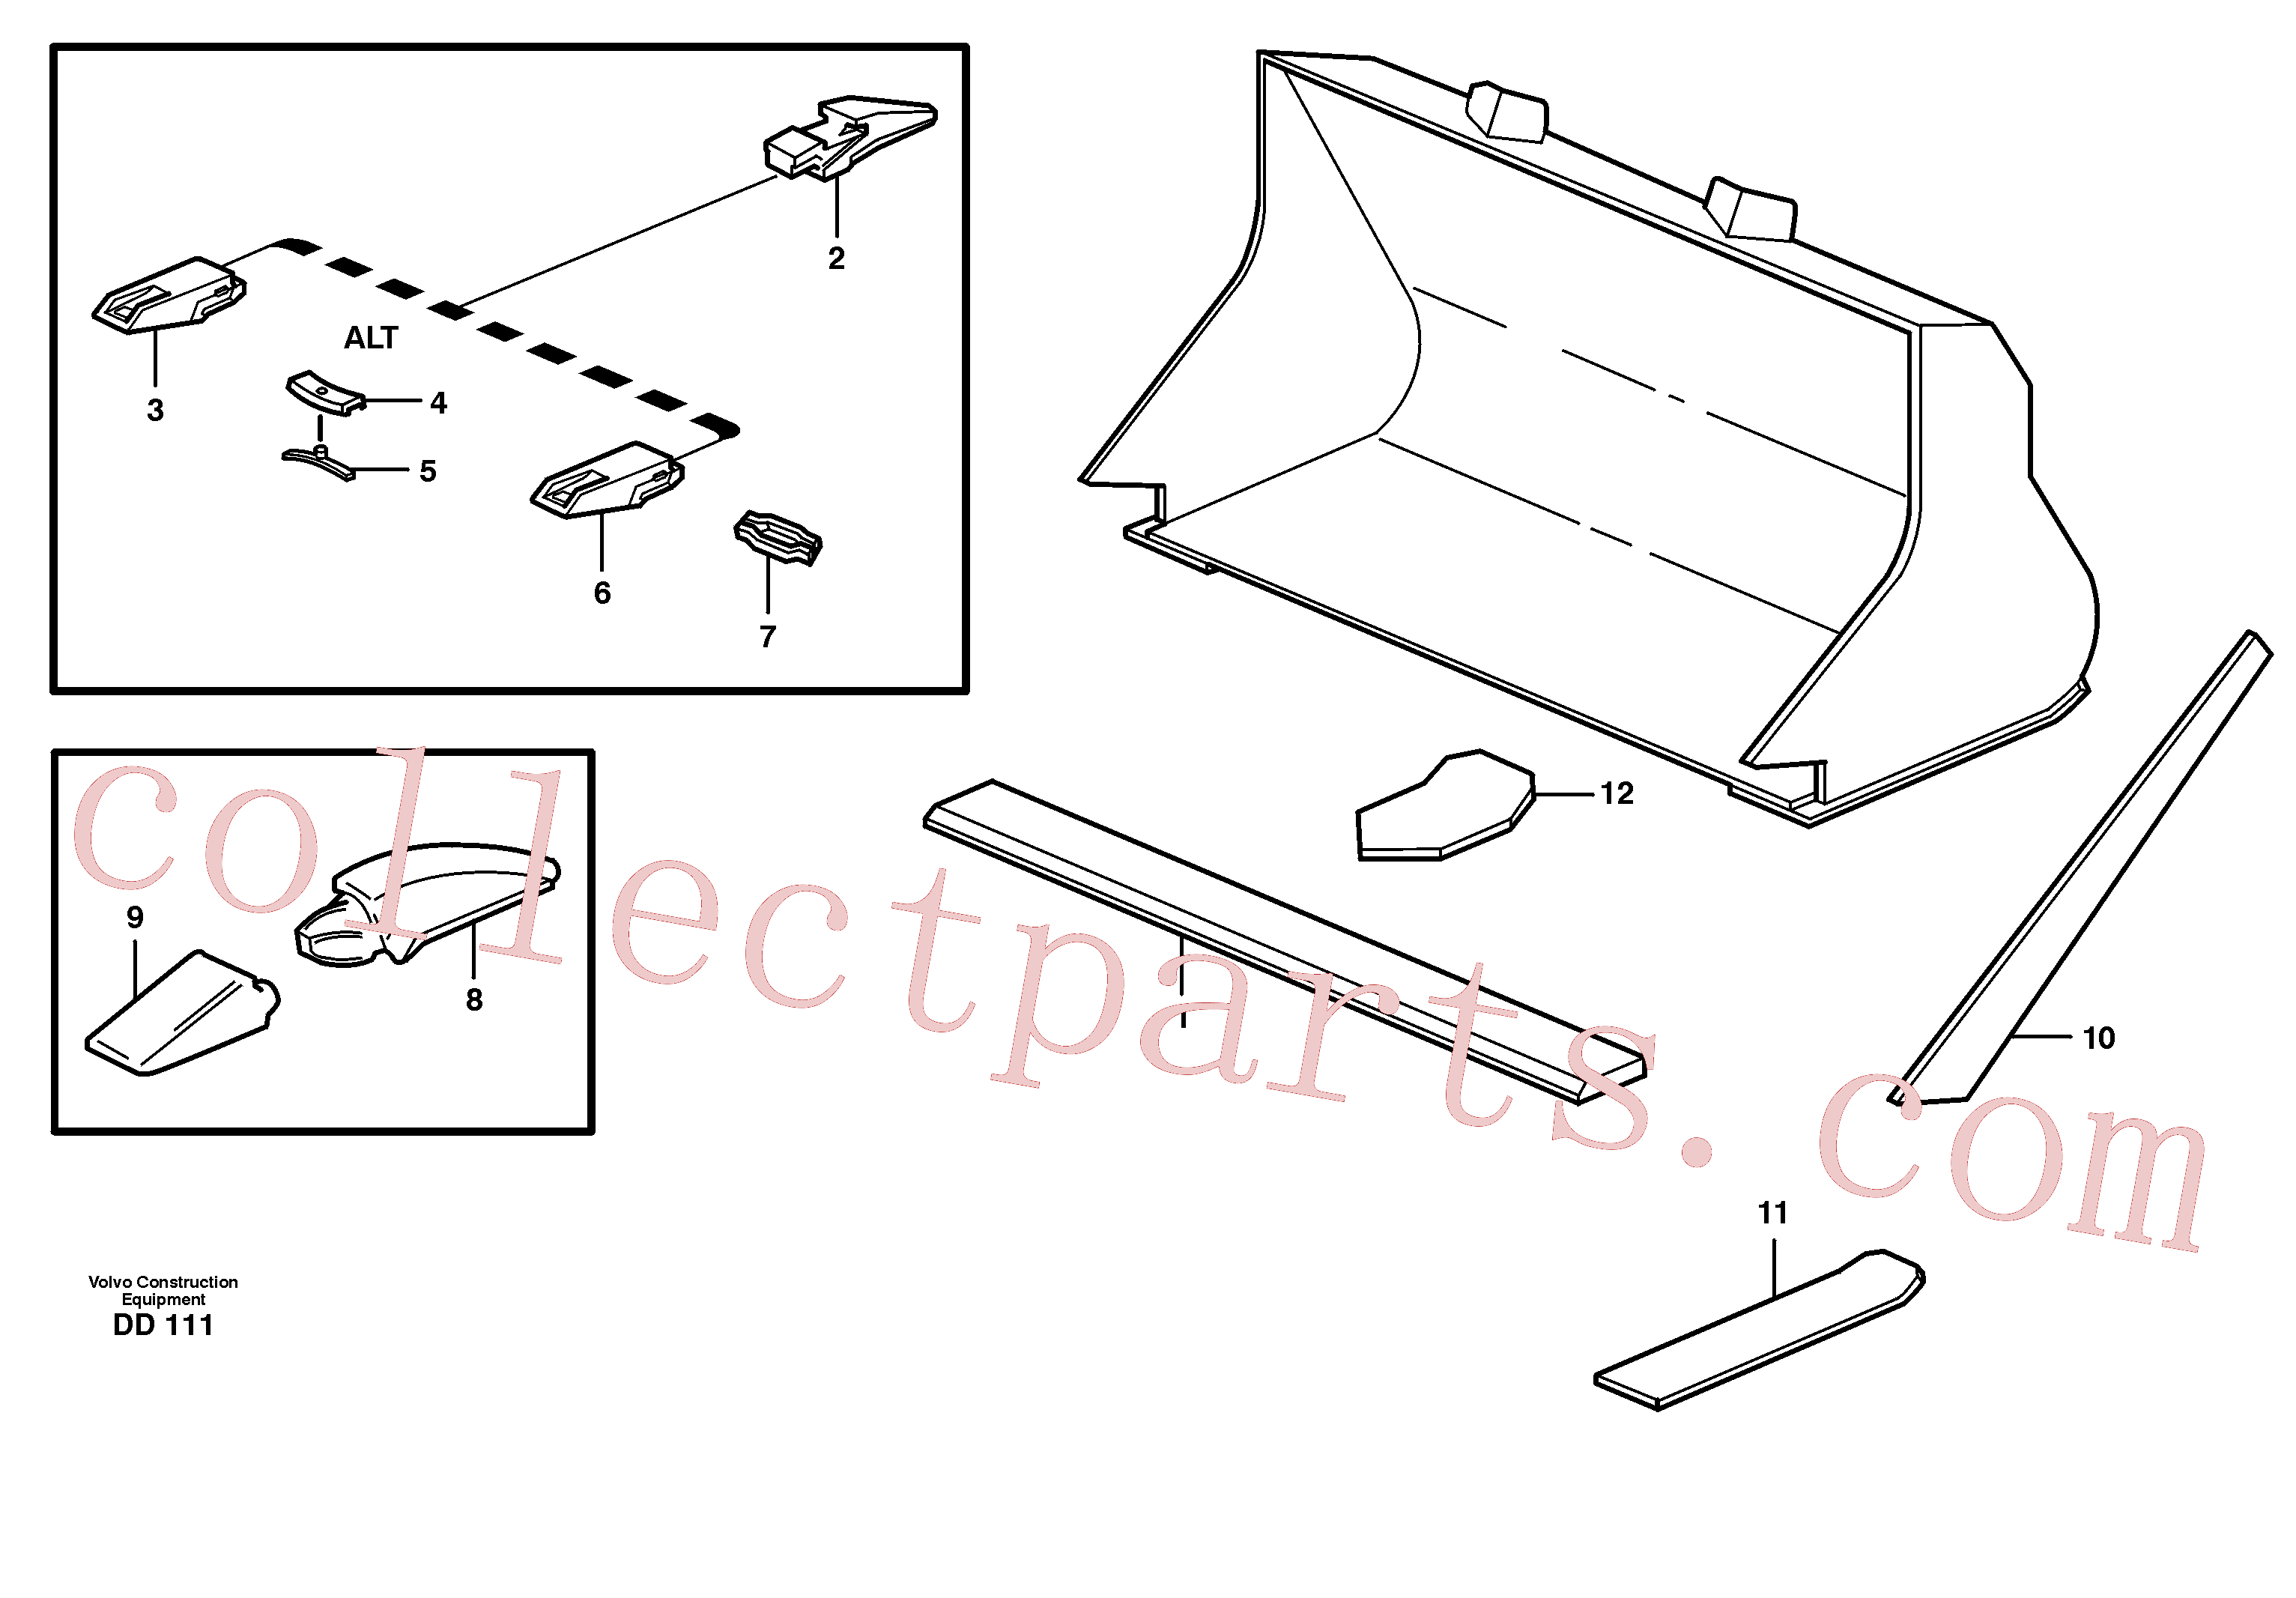 VOE4881710 for Volvo Bucket, straight with teeth(DD111 assembly)